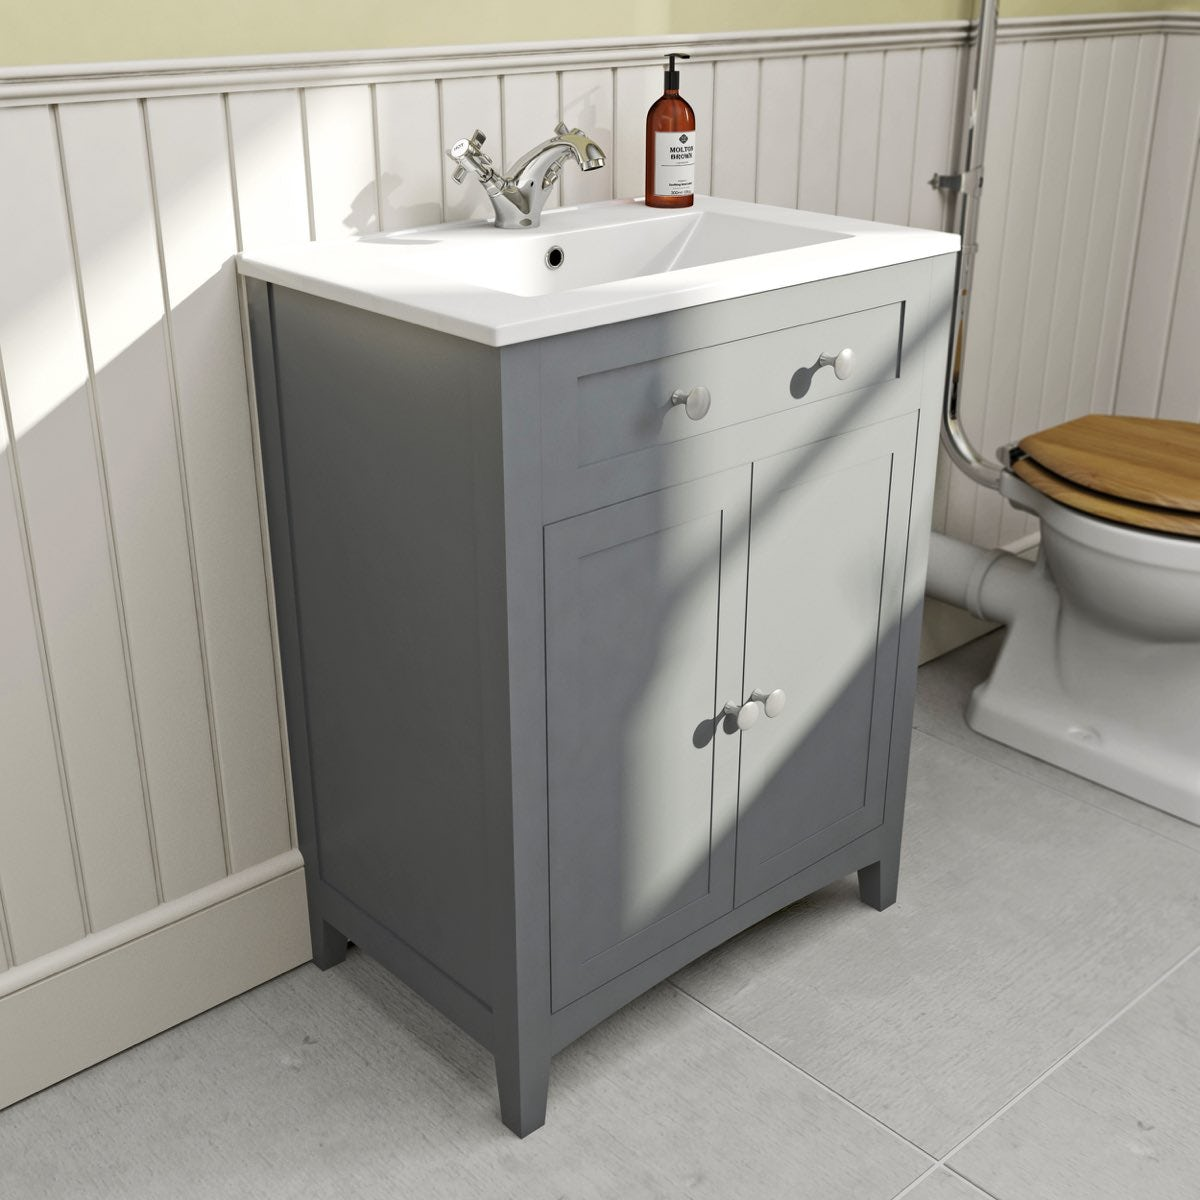 Floor mounted vanity units bathroom